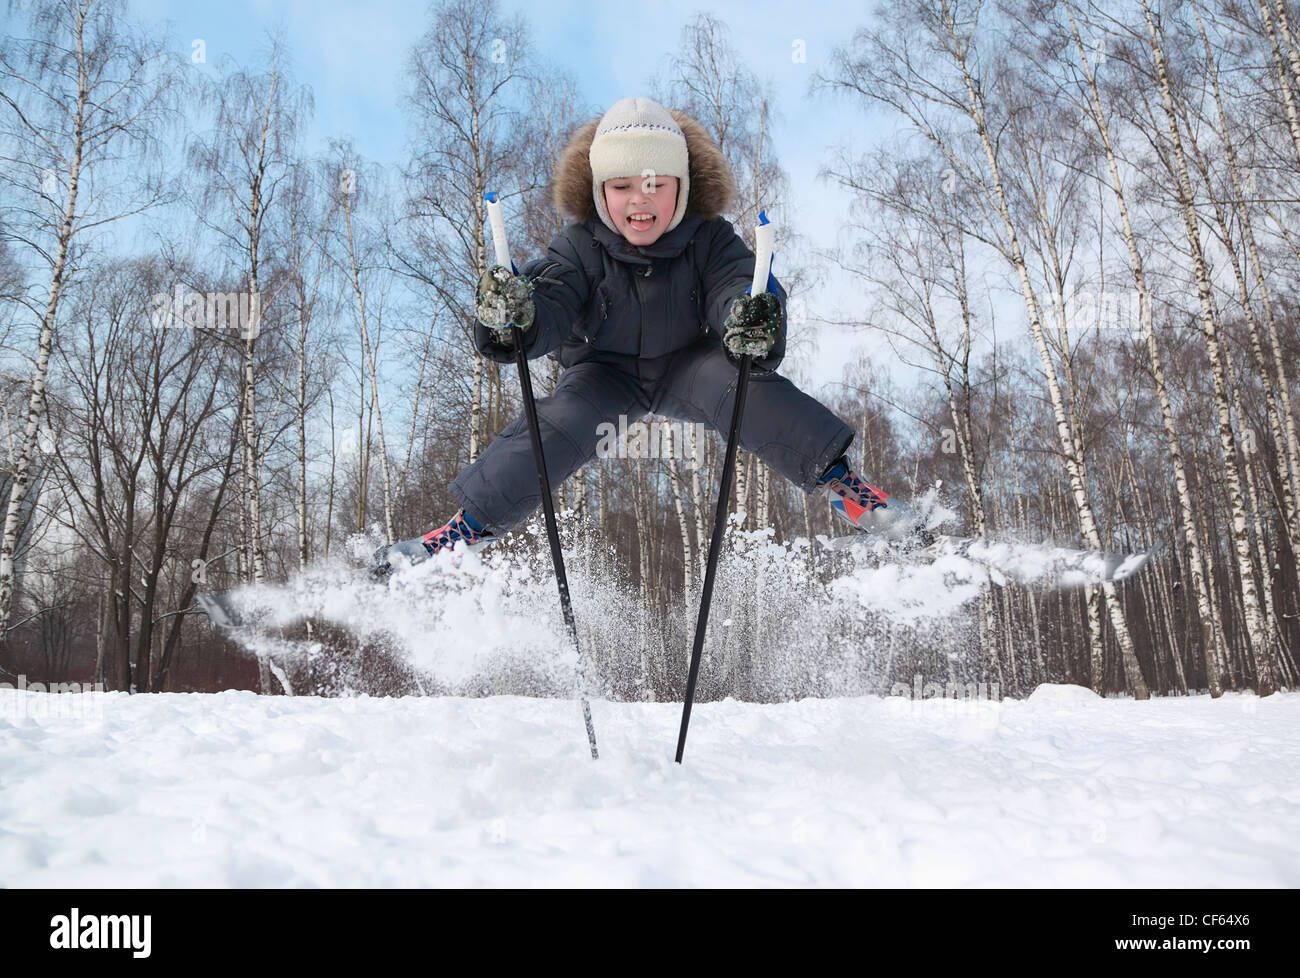 Young boy with cross-country skis and poles jumps and tongue out inside winter forest at sunny day - Stock Image